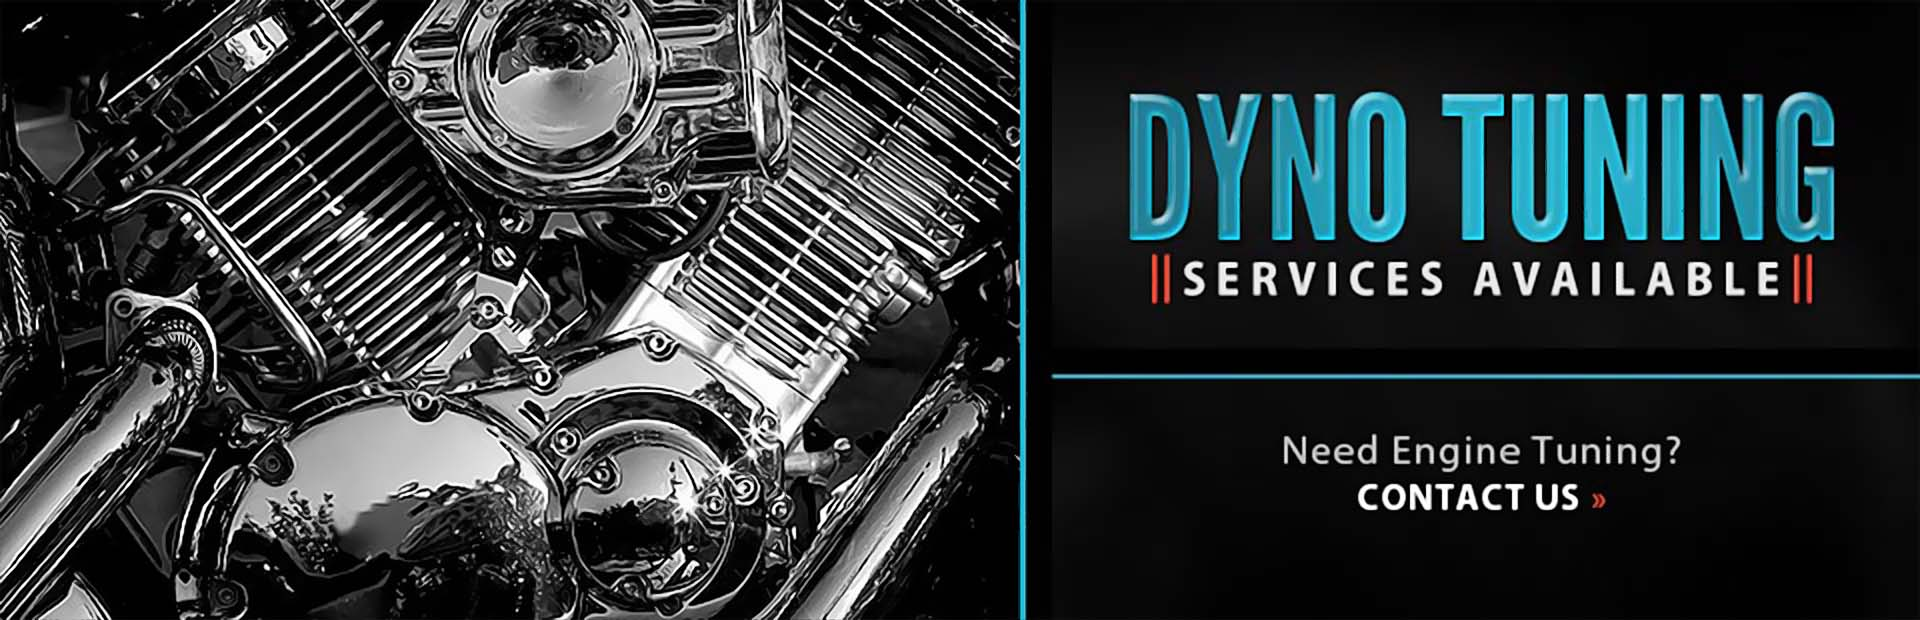 Dyno Tuning Services Available: Contact us for details.